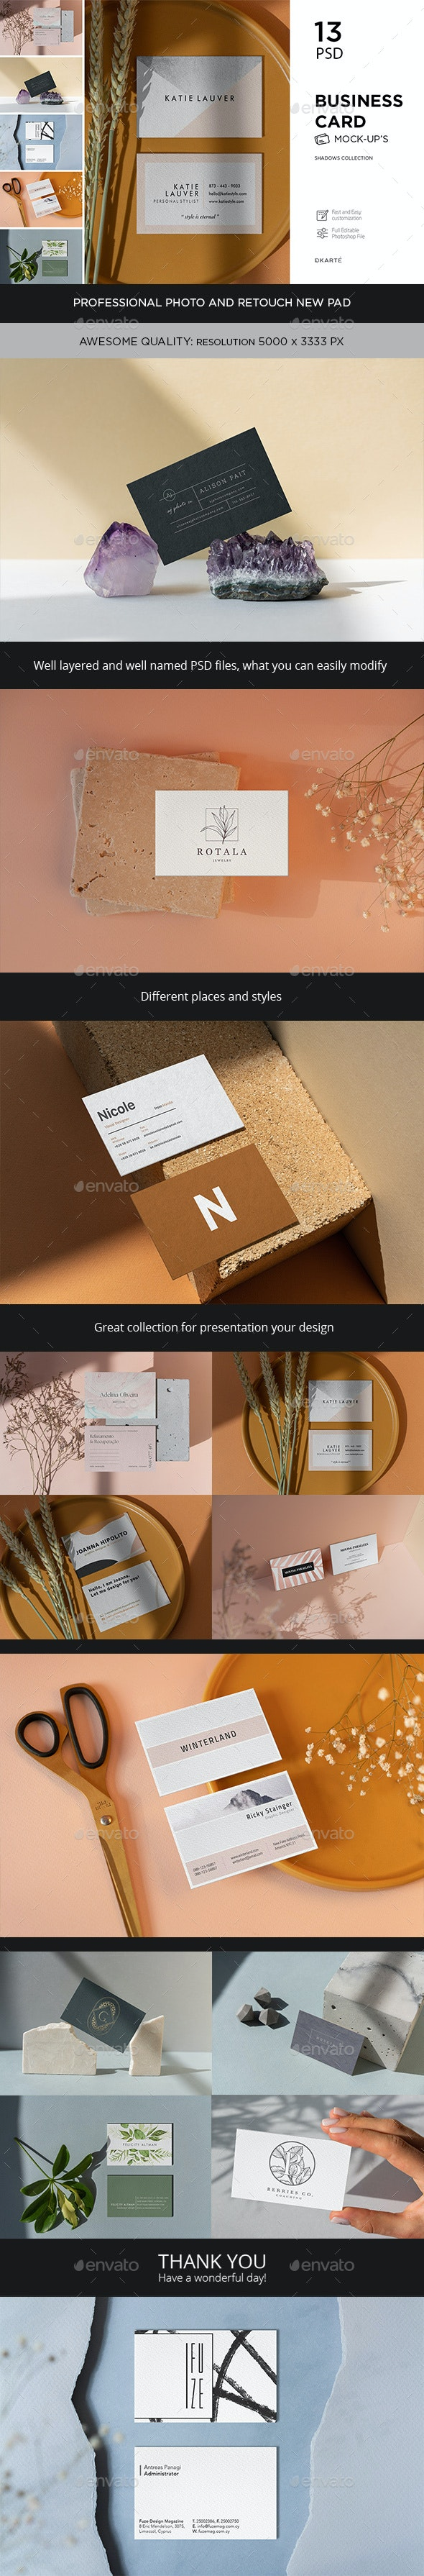 Business Card Shadows Collection - Business Cards Print